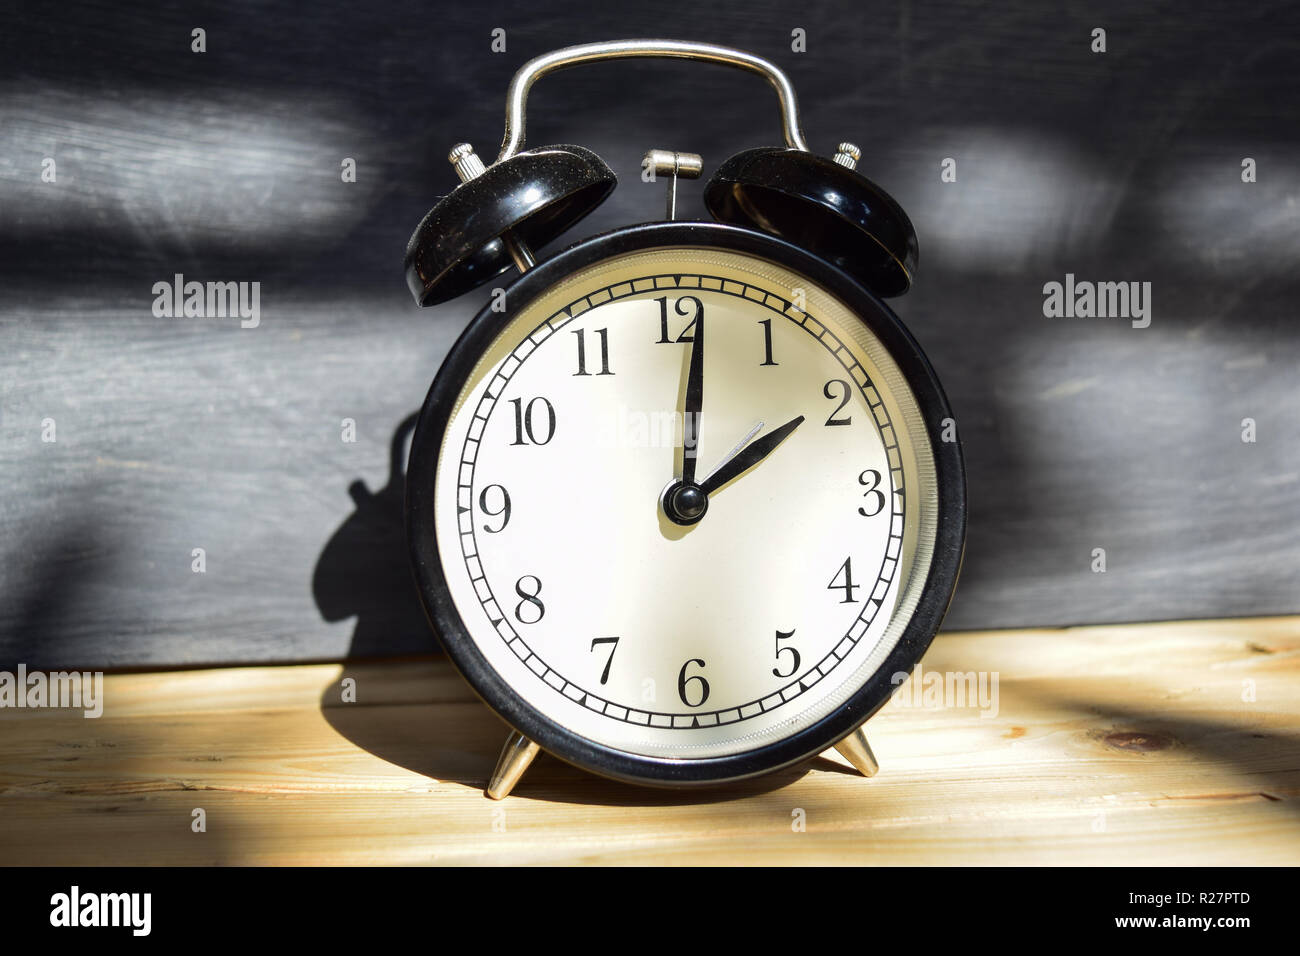 2 am/pm Back to school concept. Alarm clock on wooden with blackboard on background - Stock Image